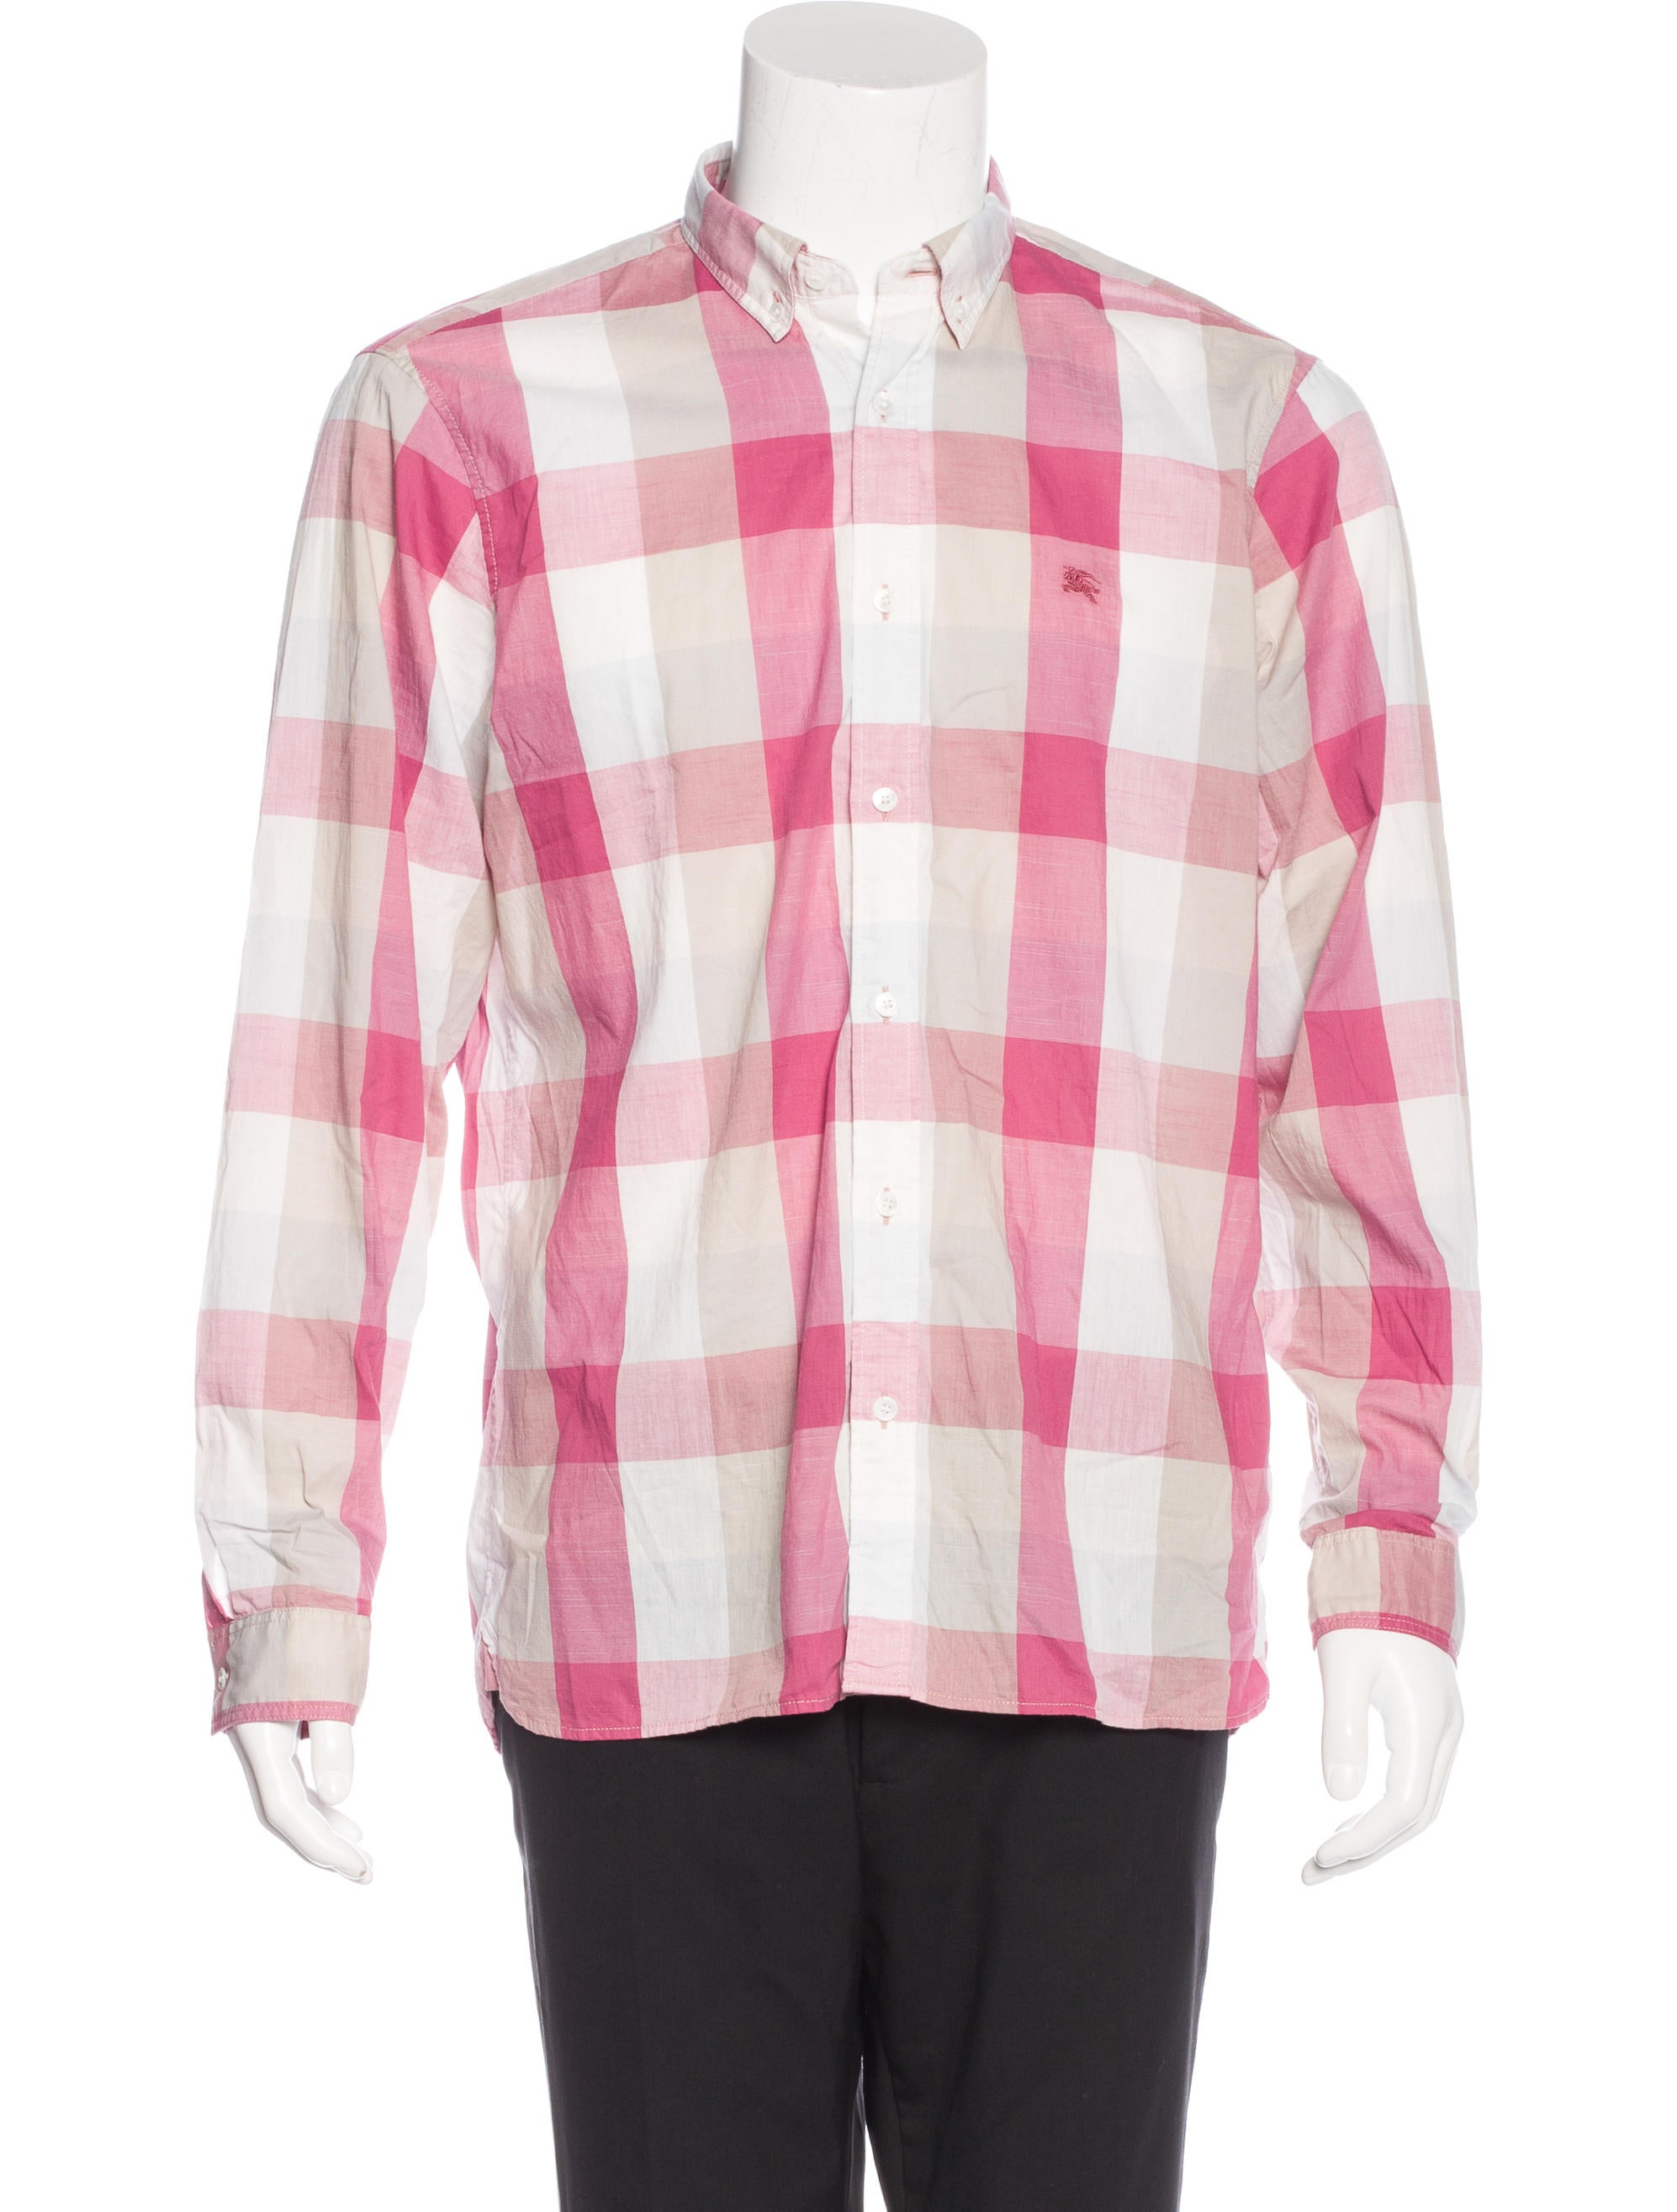 Burberry brit check woven shirt clothing bbr27125 for Burberry brit checked shirt